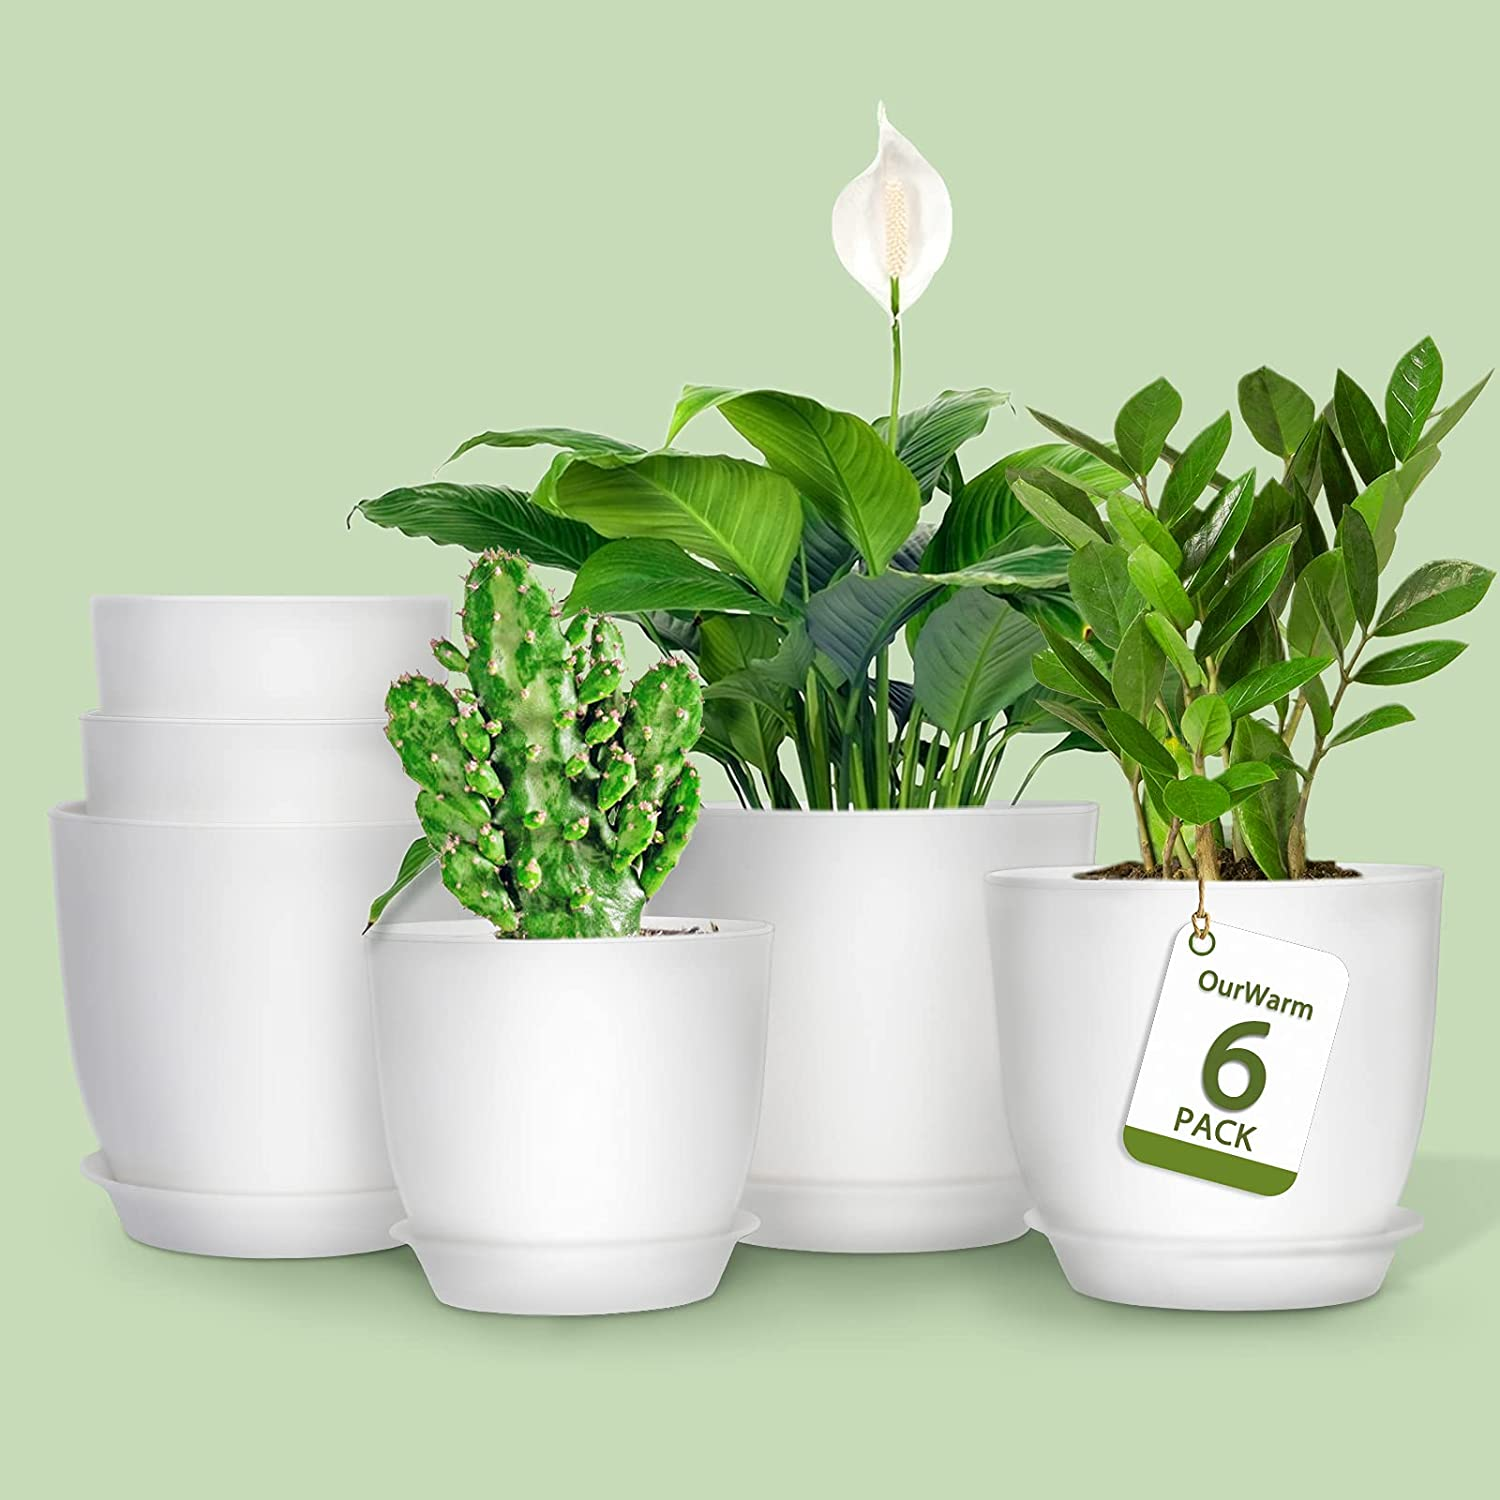 Ourwarm Plant Pots for Plants, Set of 6 White Plastic Planter Pots, 6.2/5.5/4.9 inch Modern Indoor and Outdoor Flower Pot for Office Decor and Patio Garden, Planters with Drainage Hole and Saucer Tray